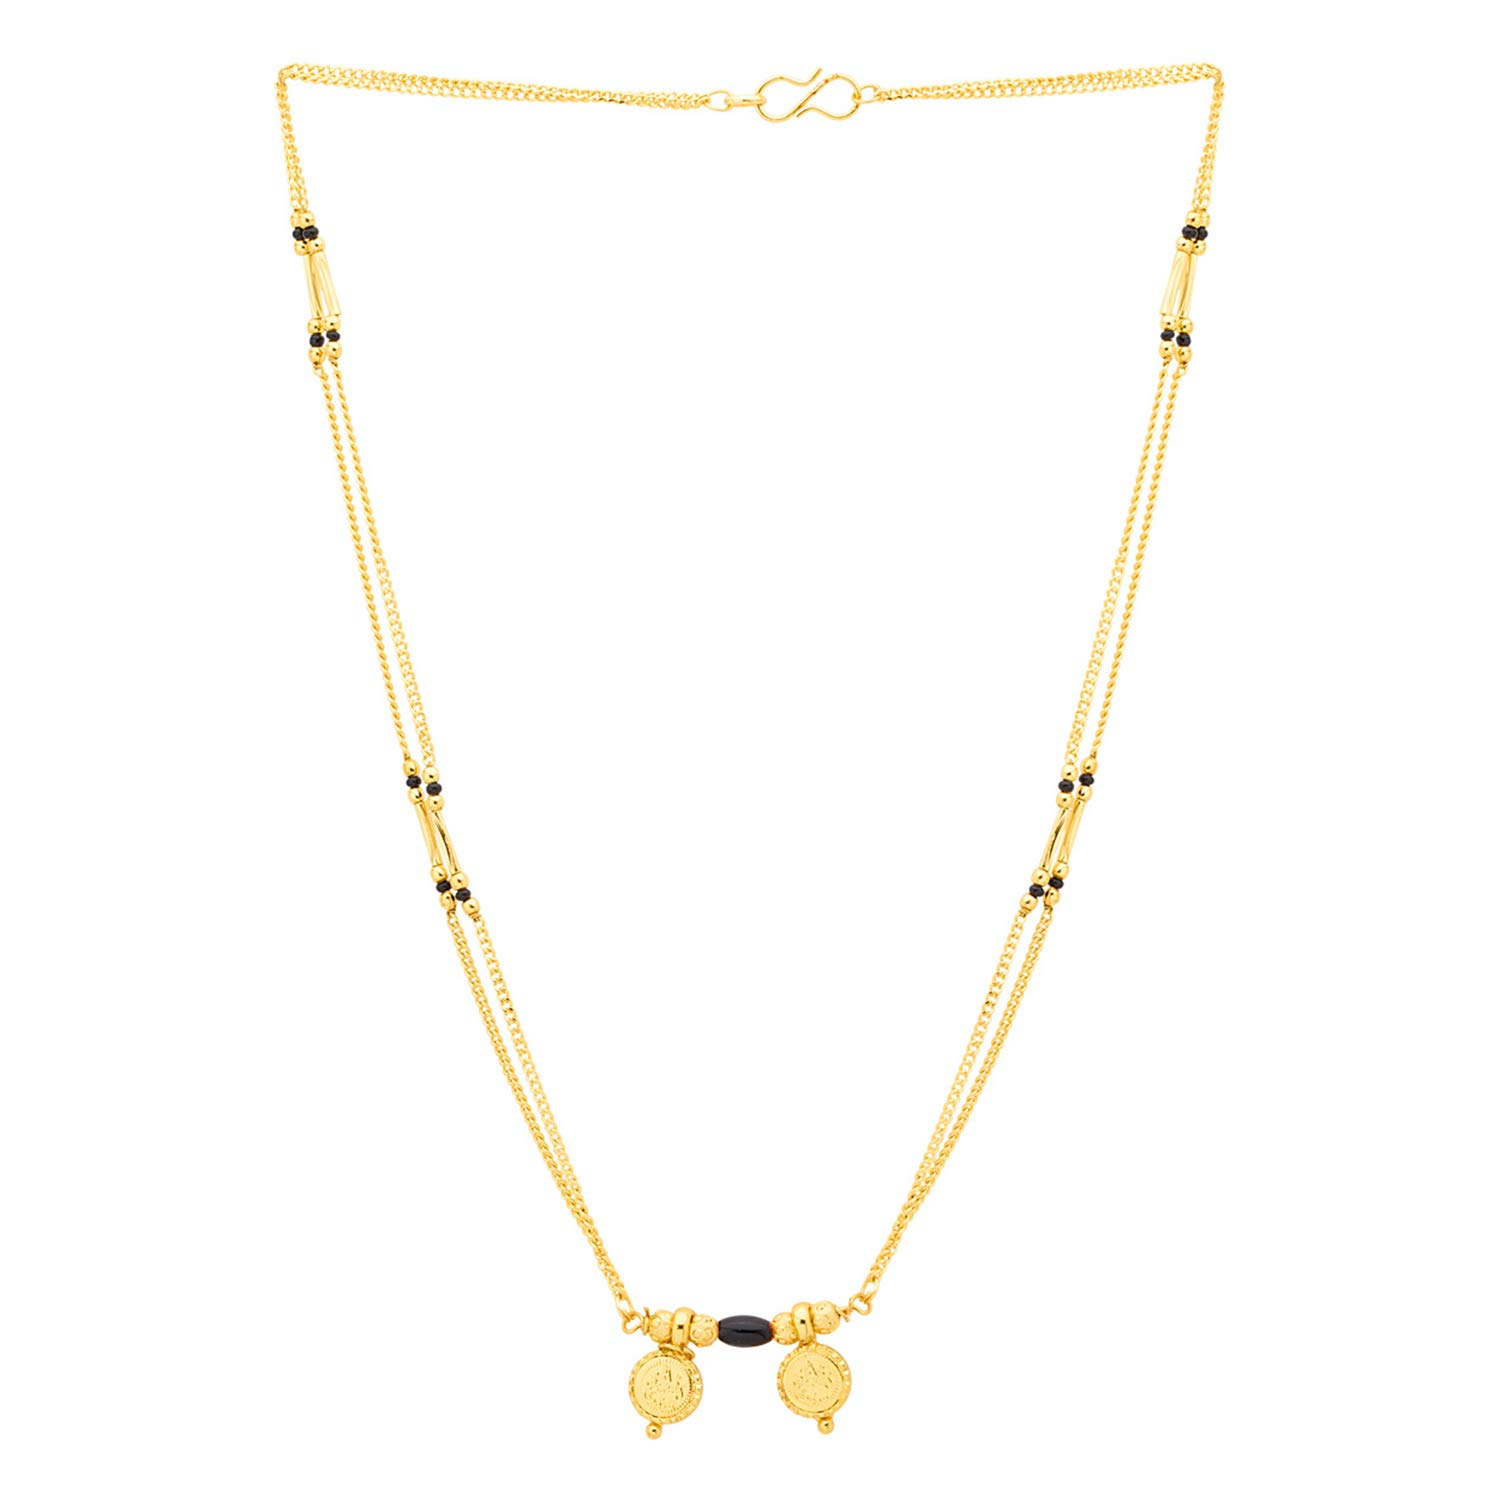 f850c8ceeaf583 Buy Voylla Copper Accessory for Women (Golden)(8907617765013) Online at Low  Prices in India